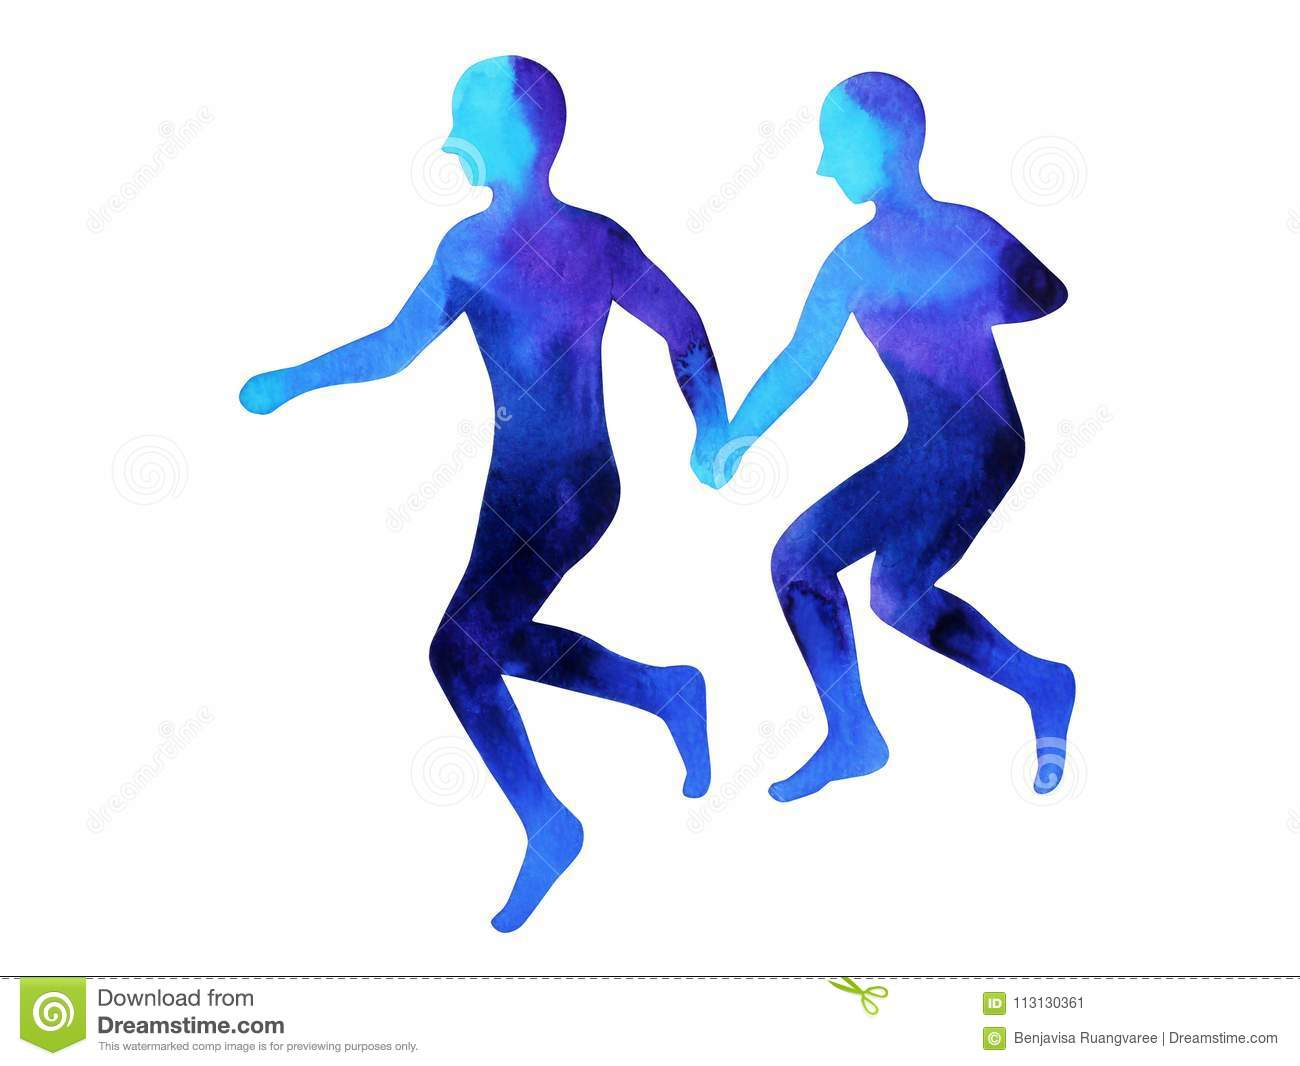 2 Human Couple Hand Holding Running Together Pose Abstract Body